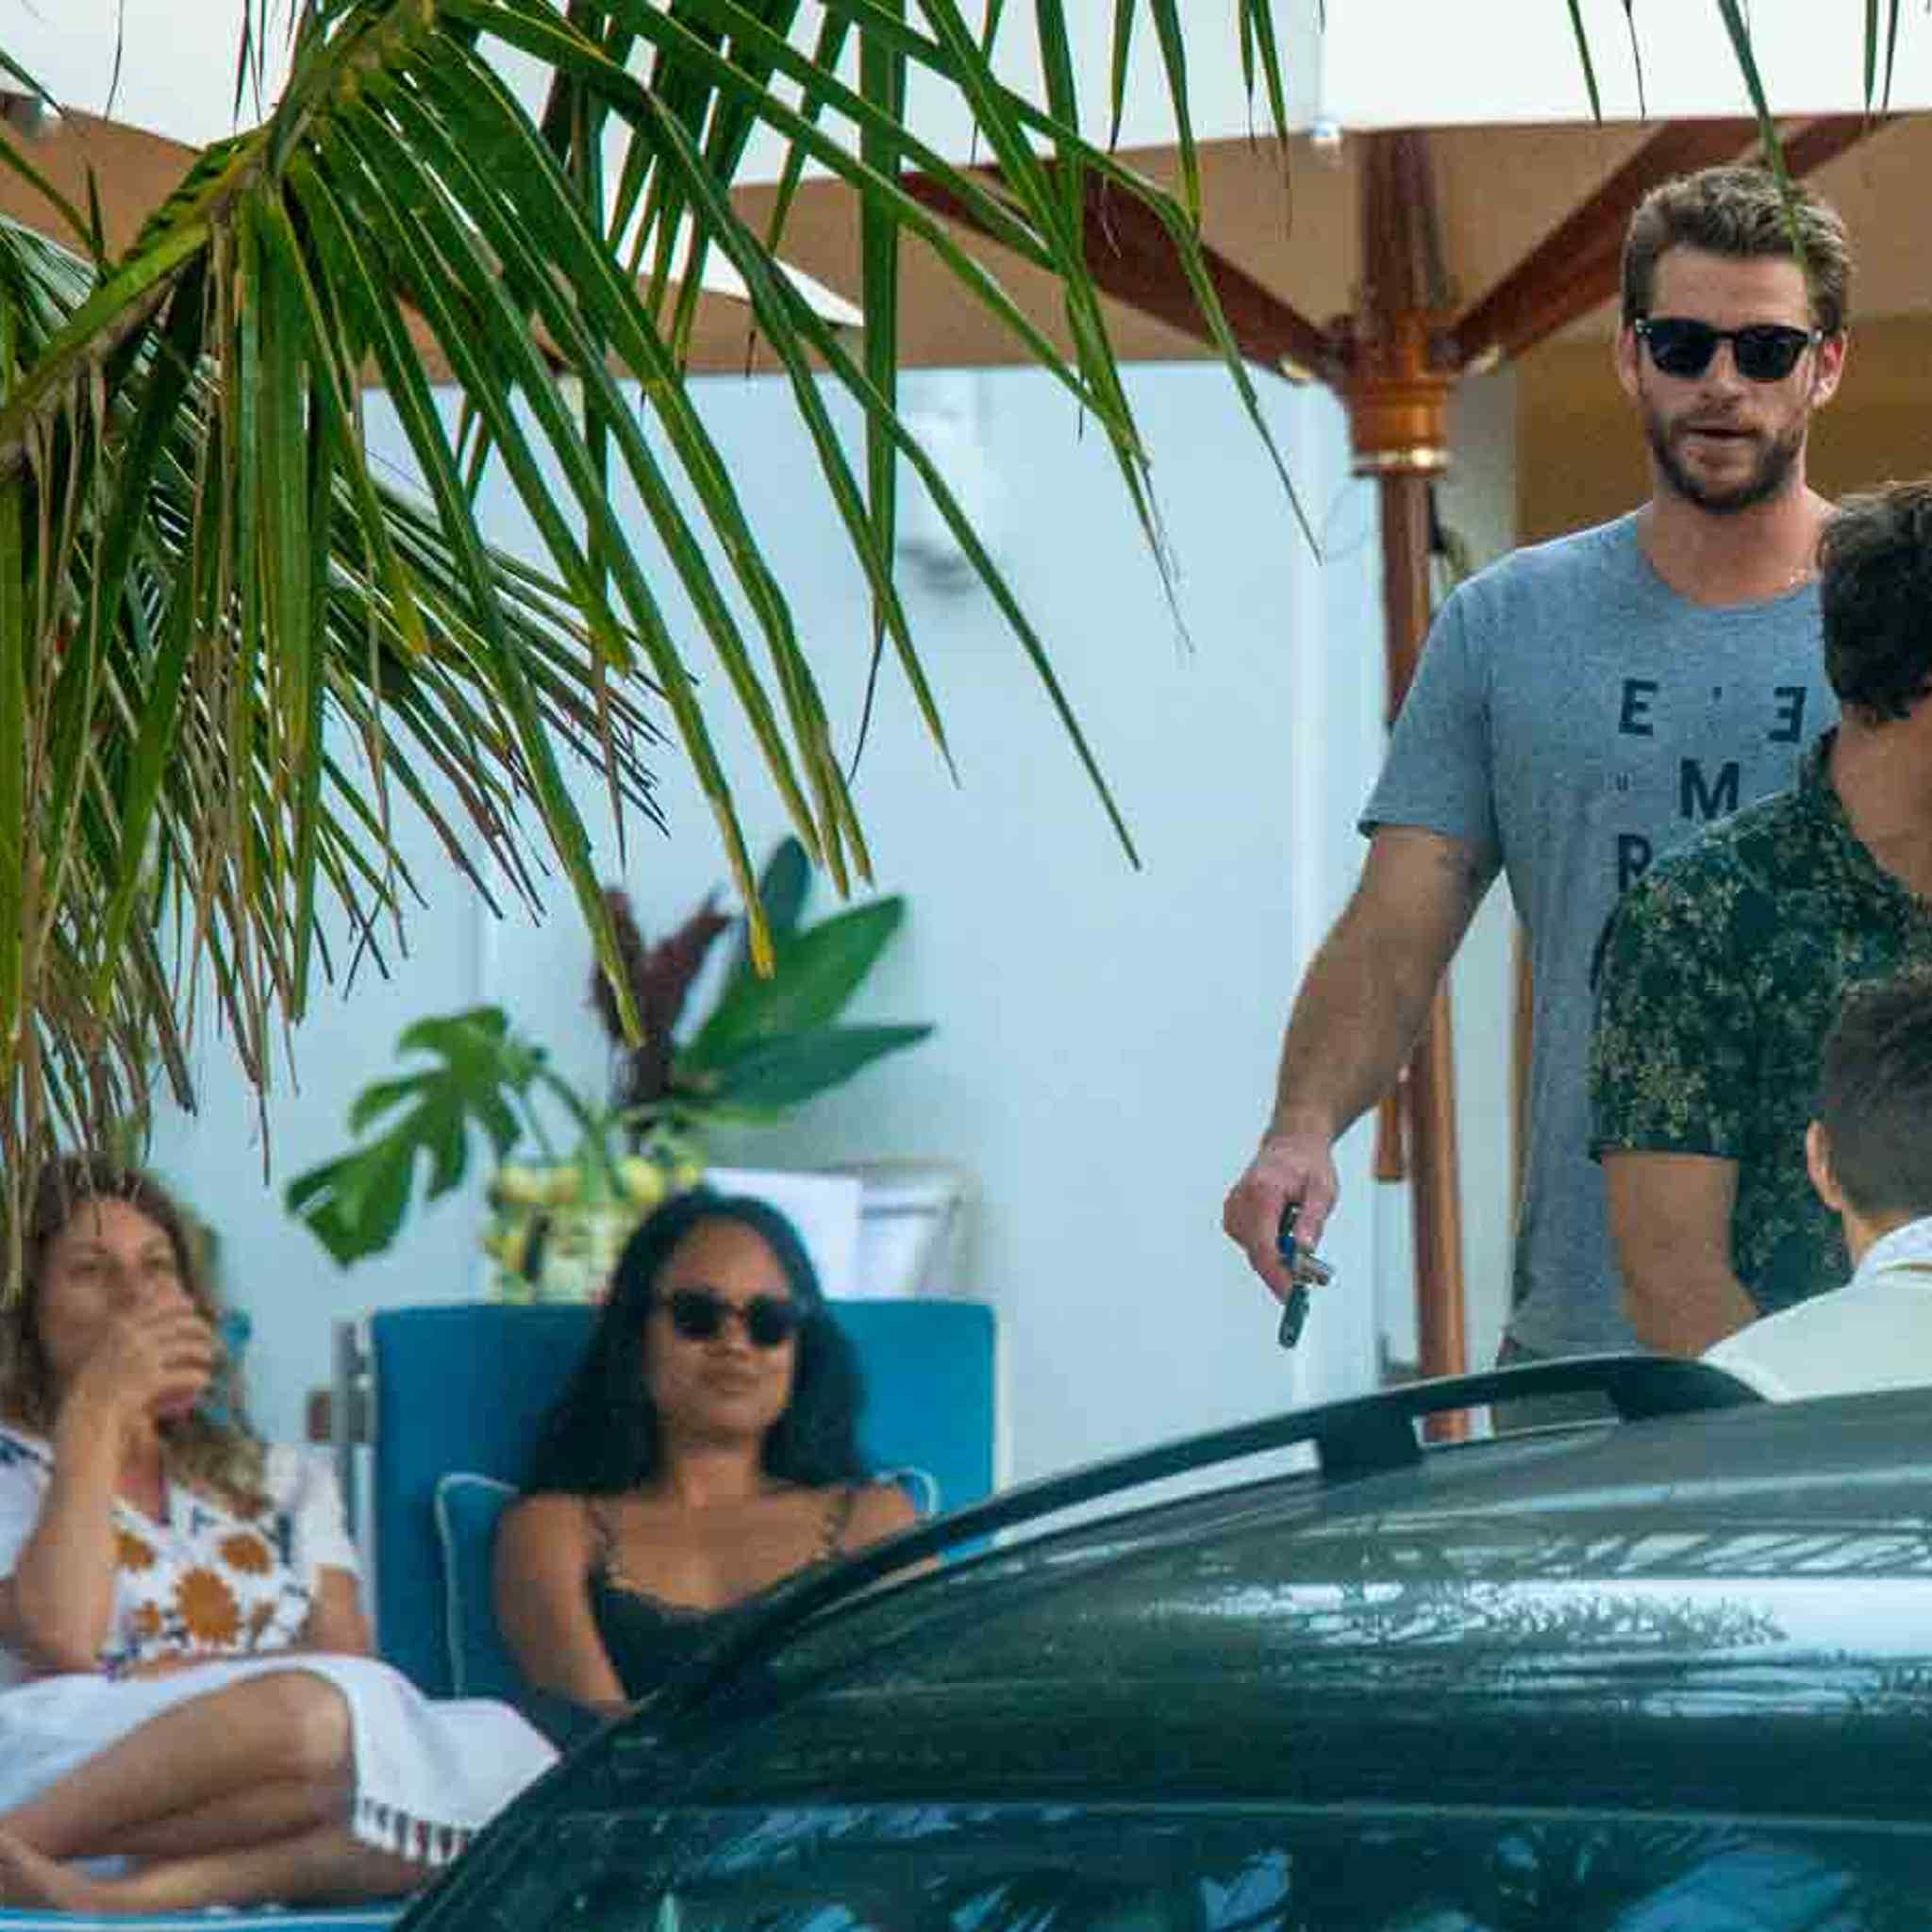 Liam Hemsworth Chills in Australia After Breakup with Miley Cyrus